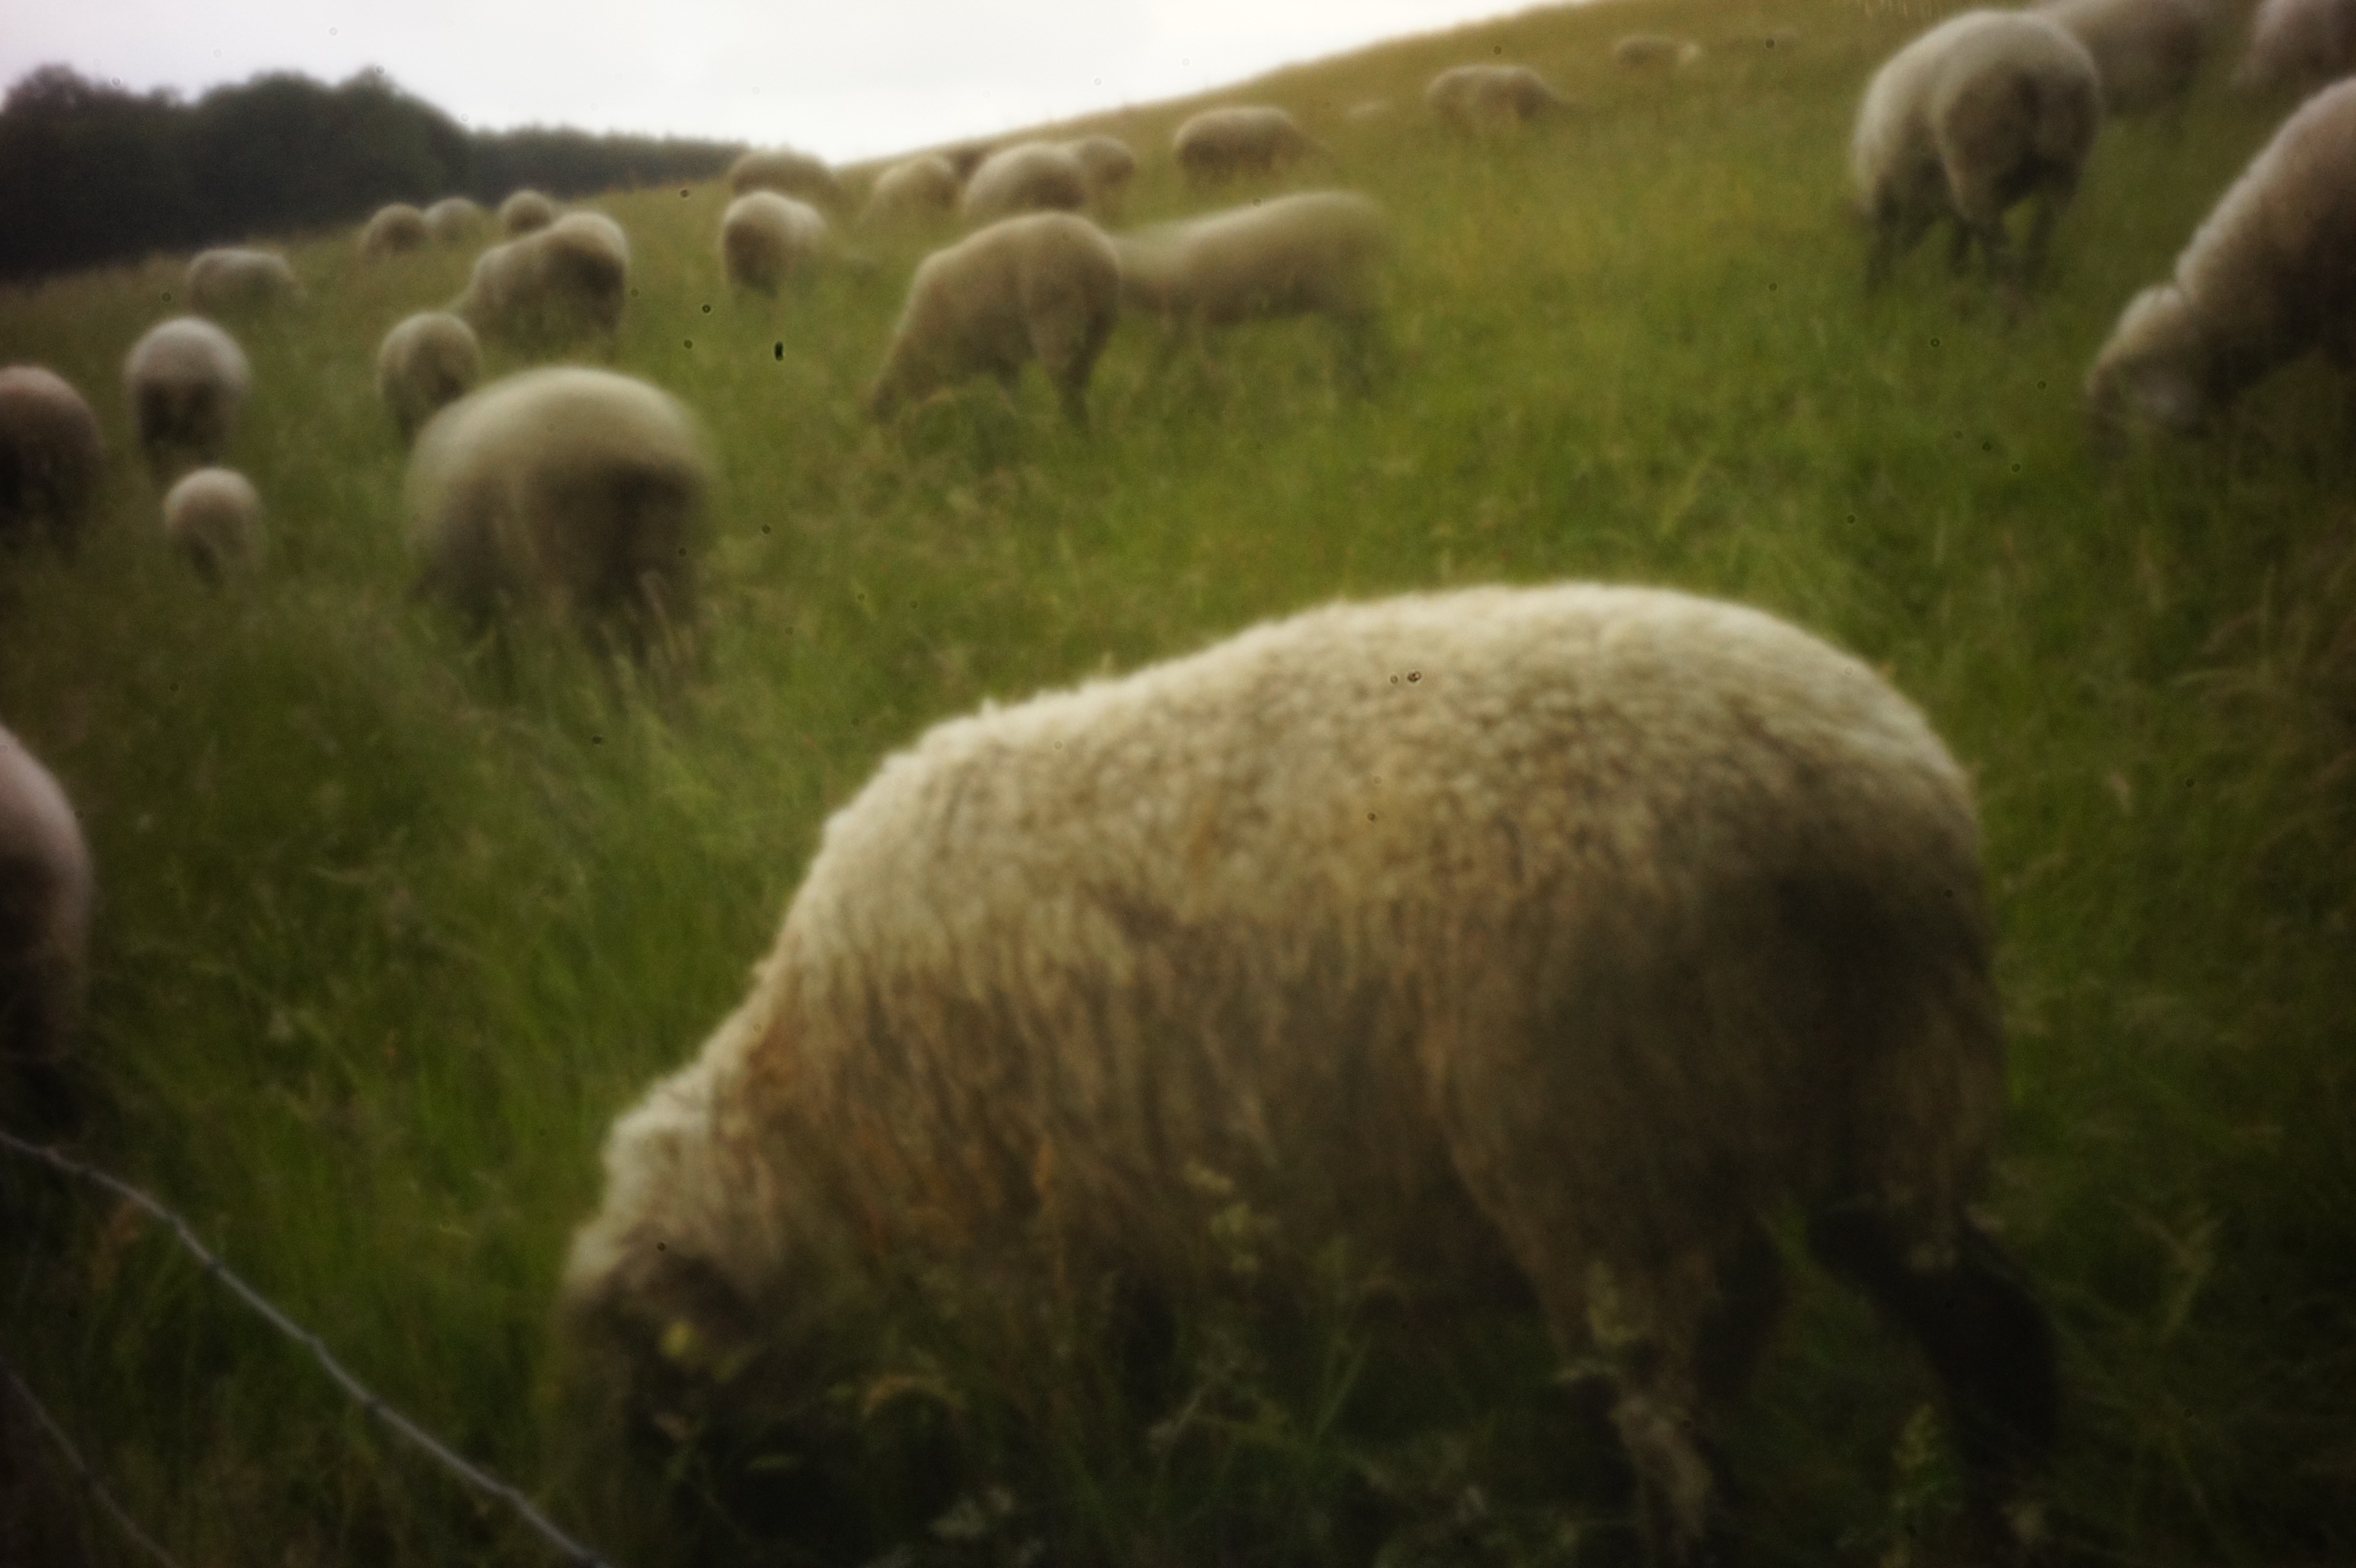 Allguschafe vor der Lochkamera &#8211; pinhole sheeps and the pinhole camera